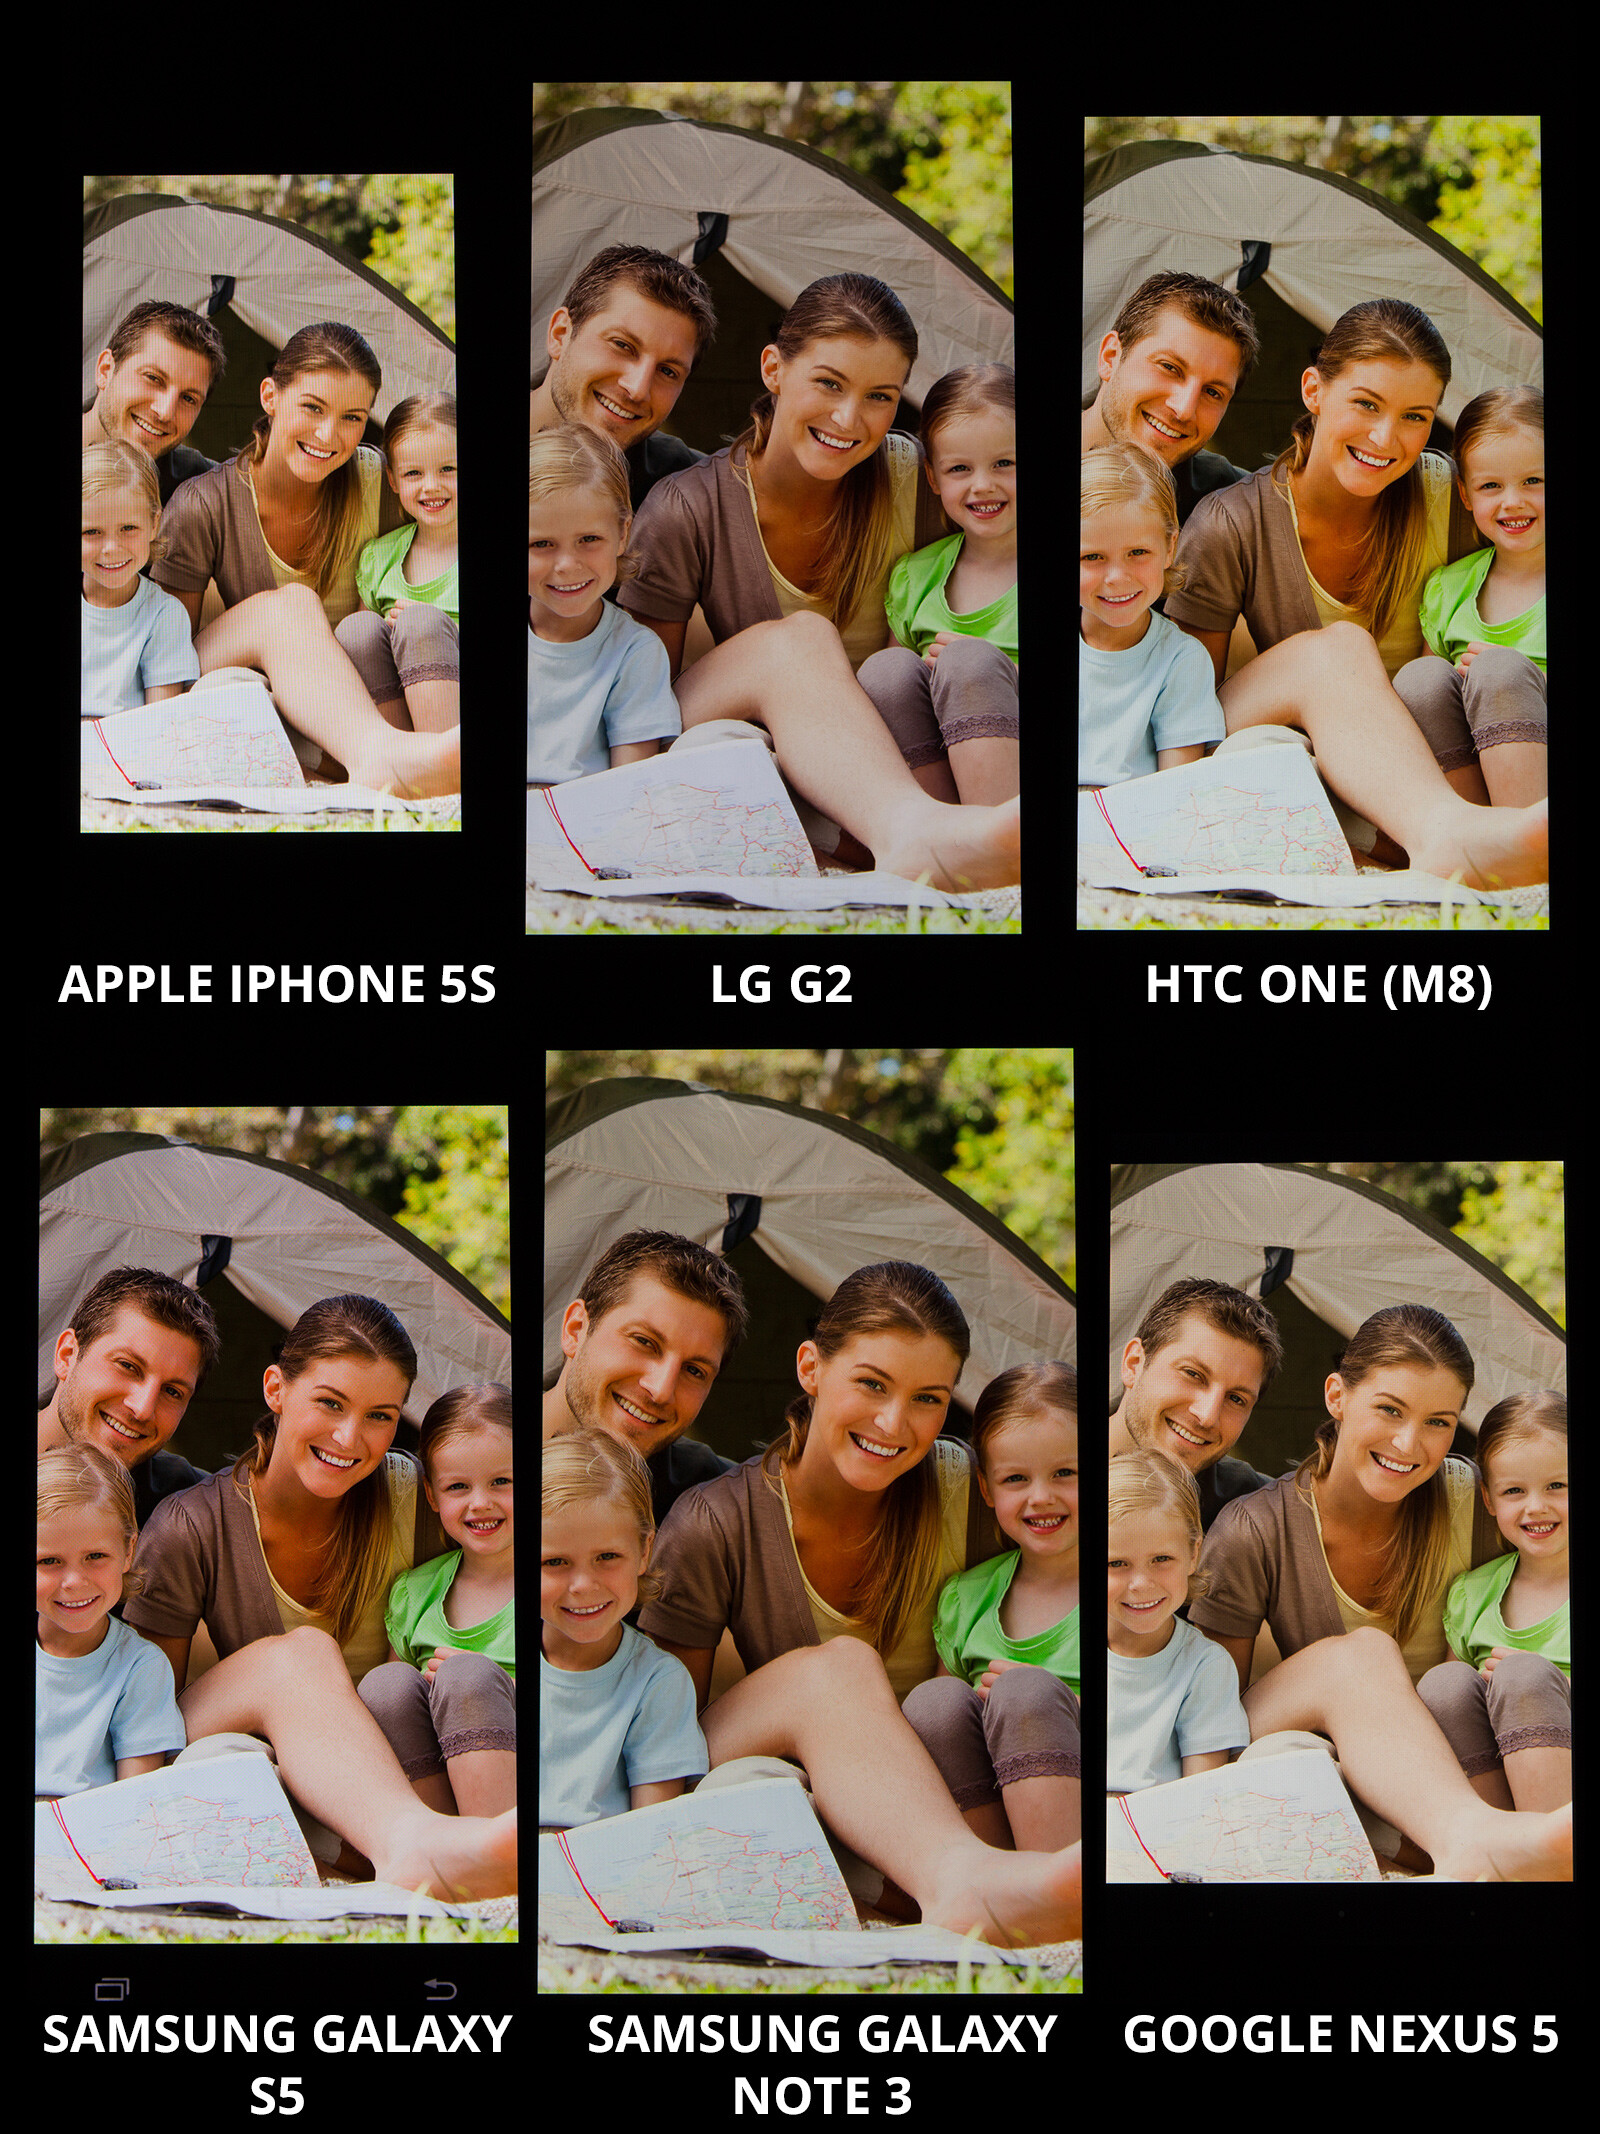 Photos For Screen Comparison Galaxy S5 Vs IPhone 5s One M8 Note 3 Nexus 5 G2